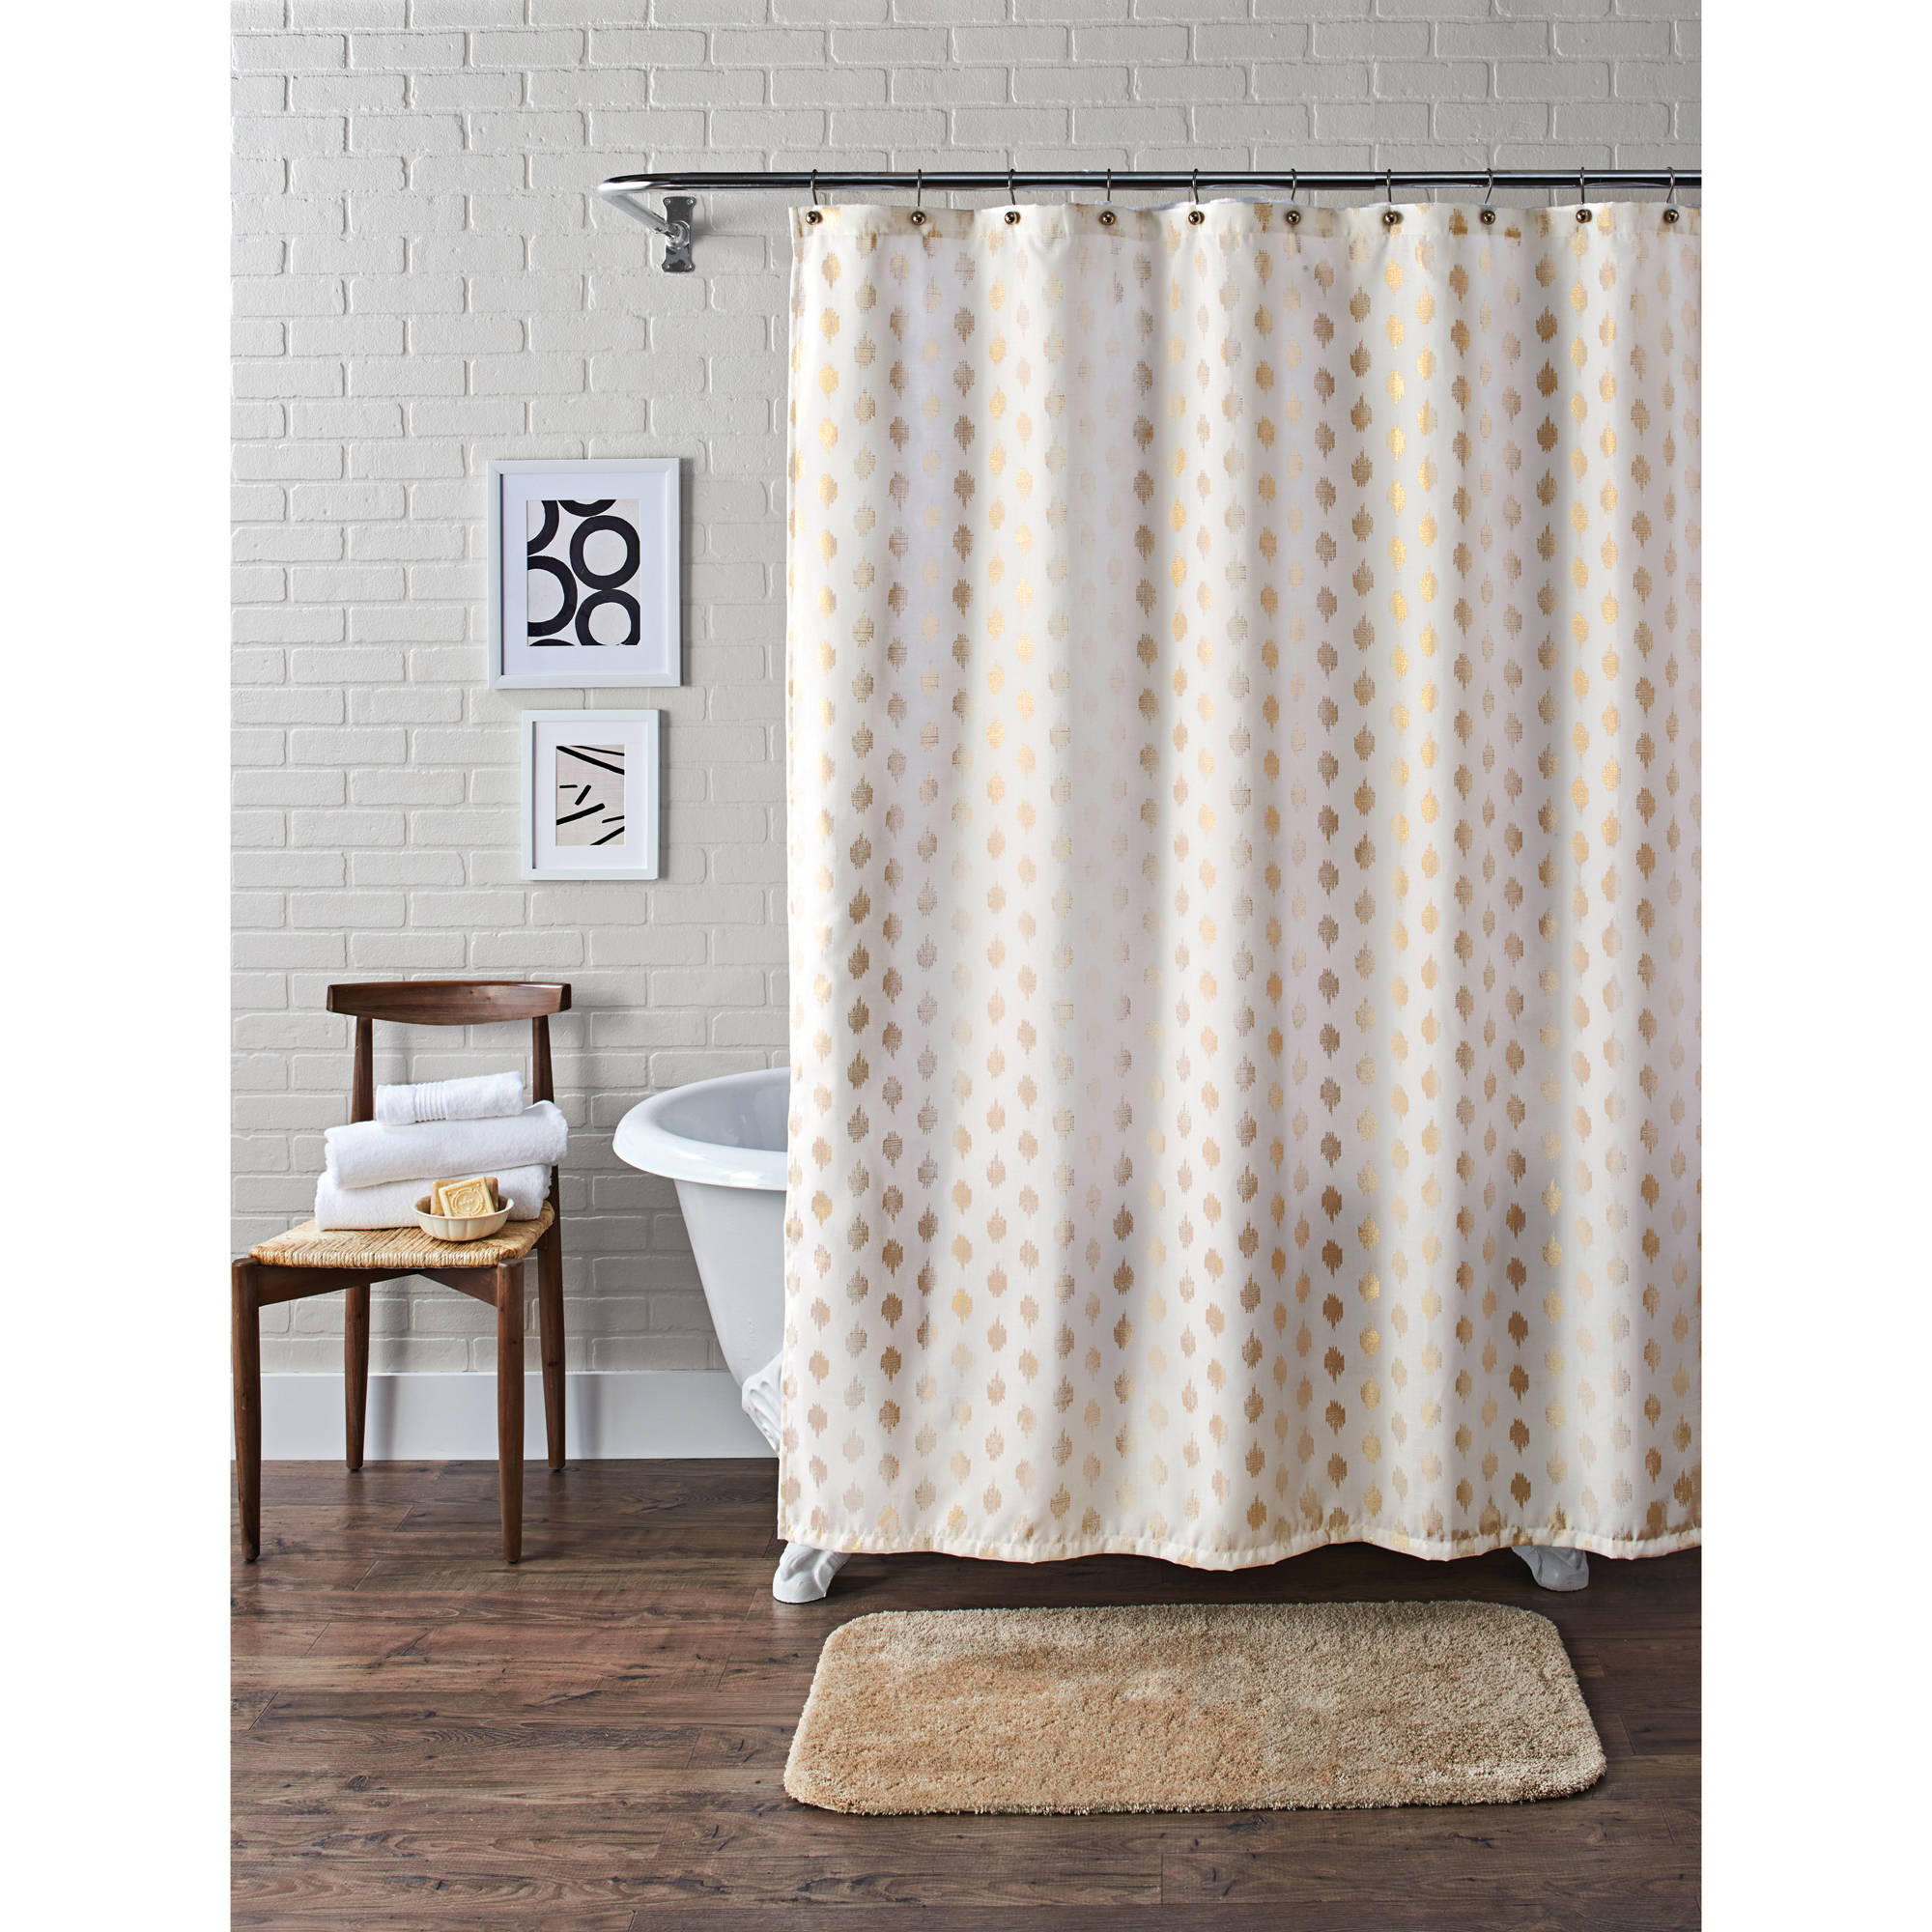 Better Homes and Gardens Metallic Ikat Dou Fabric Shower Curtain by Maytex Mills